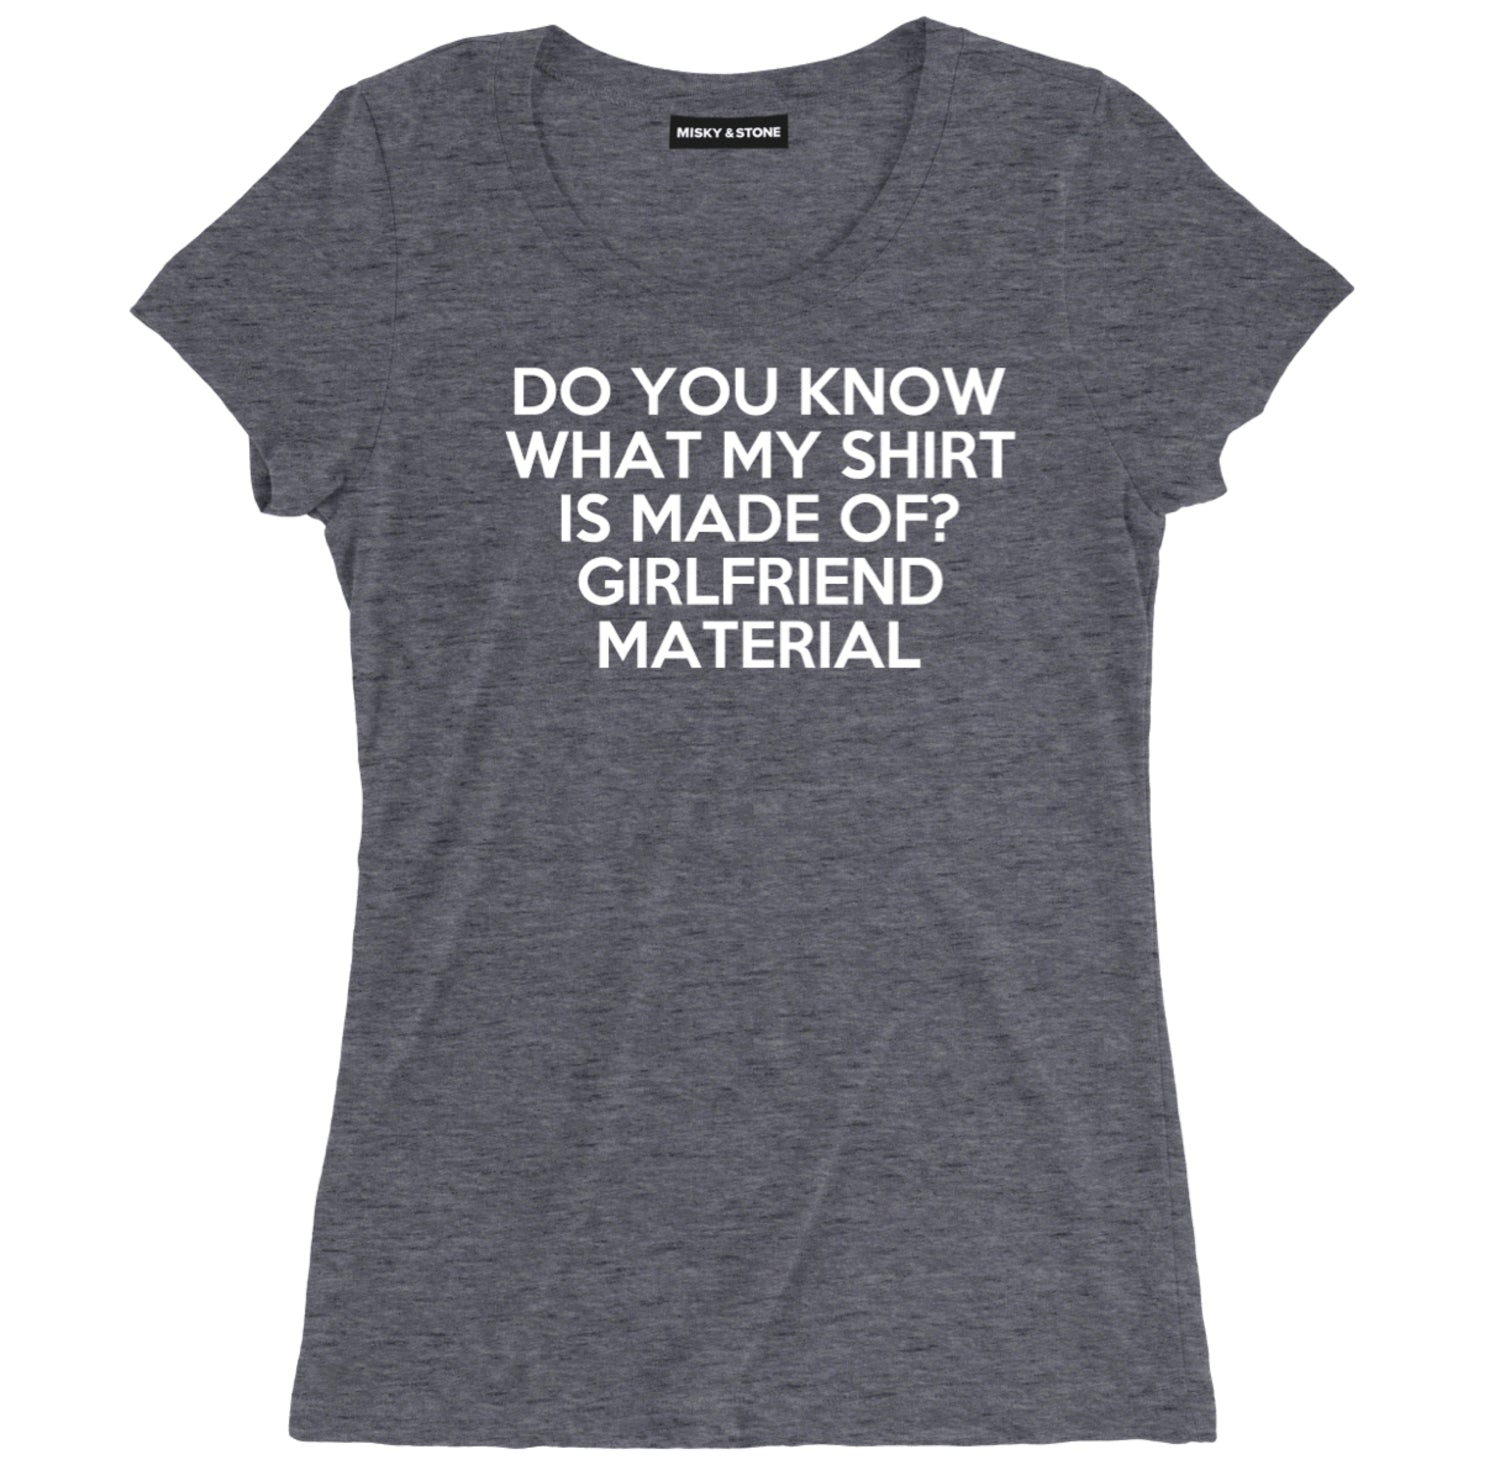 girlfriend material sarcastic t shirts, do you know what my shirt is made sarcastic shirts, girlfriend sarcastic tee shirts, gf material sarcastic tees, sarcastic t shirt sayings, sarcastic t shirts quotes, funny sarcastic t shirts,